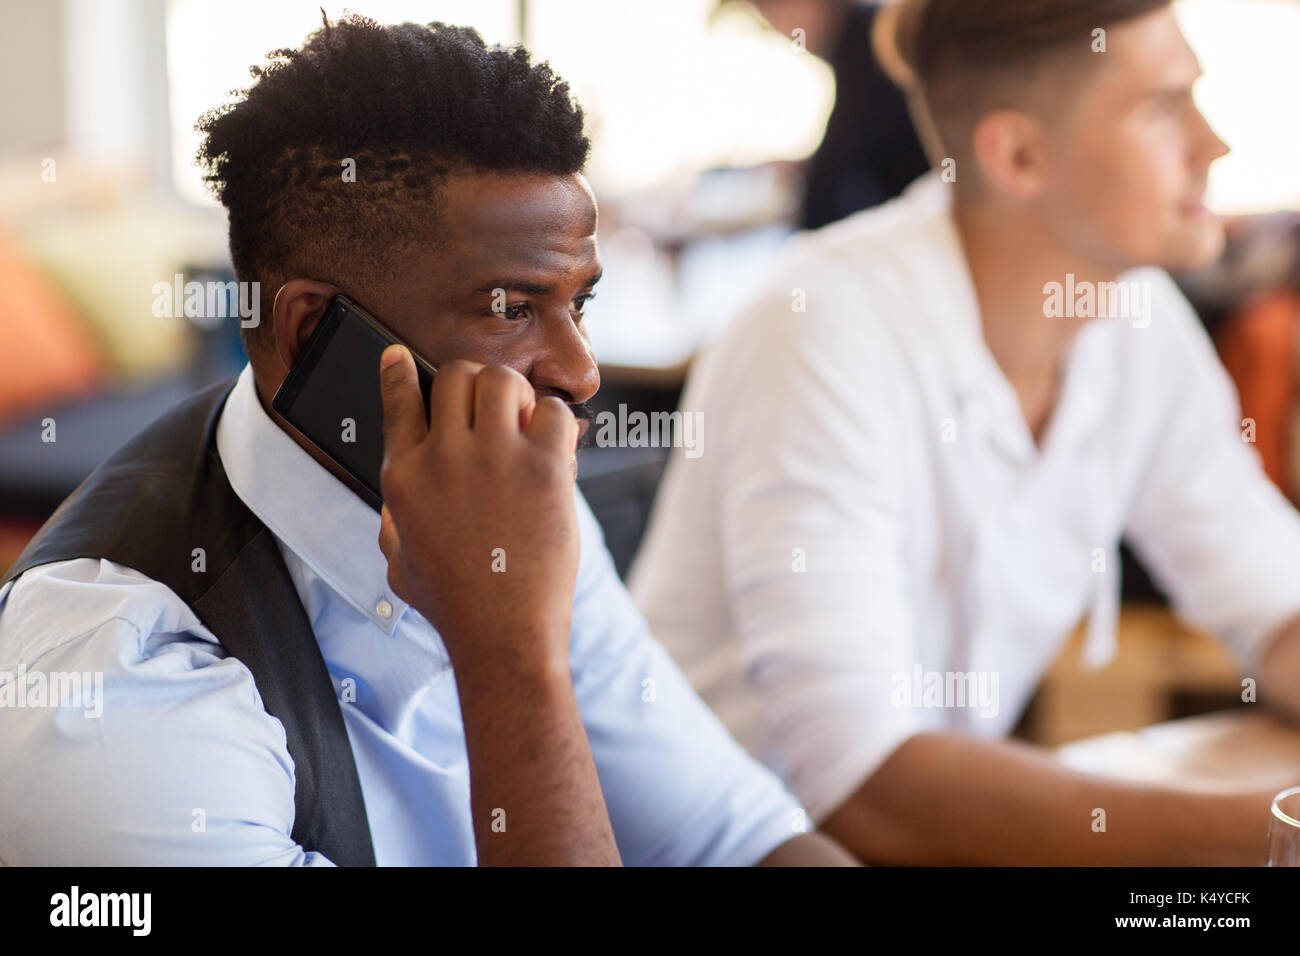 man calling on smartphone at bar or restaurant - Stock Image